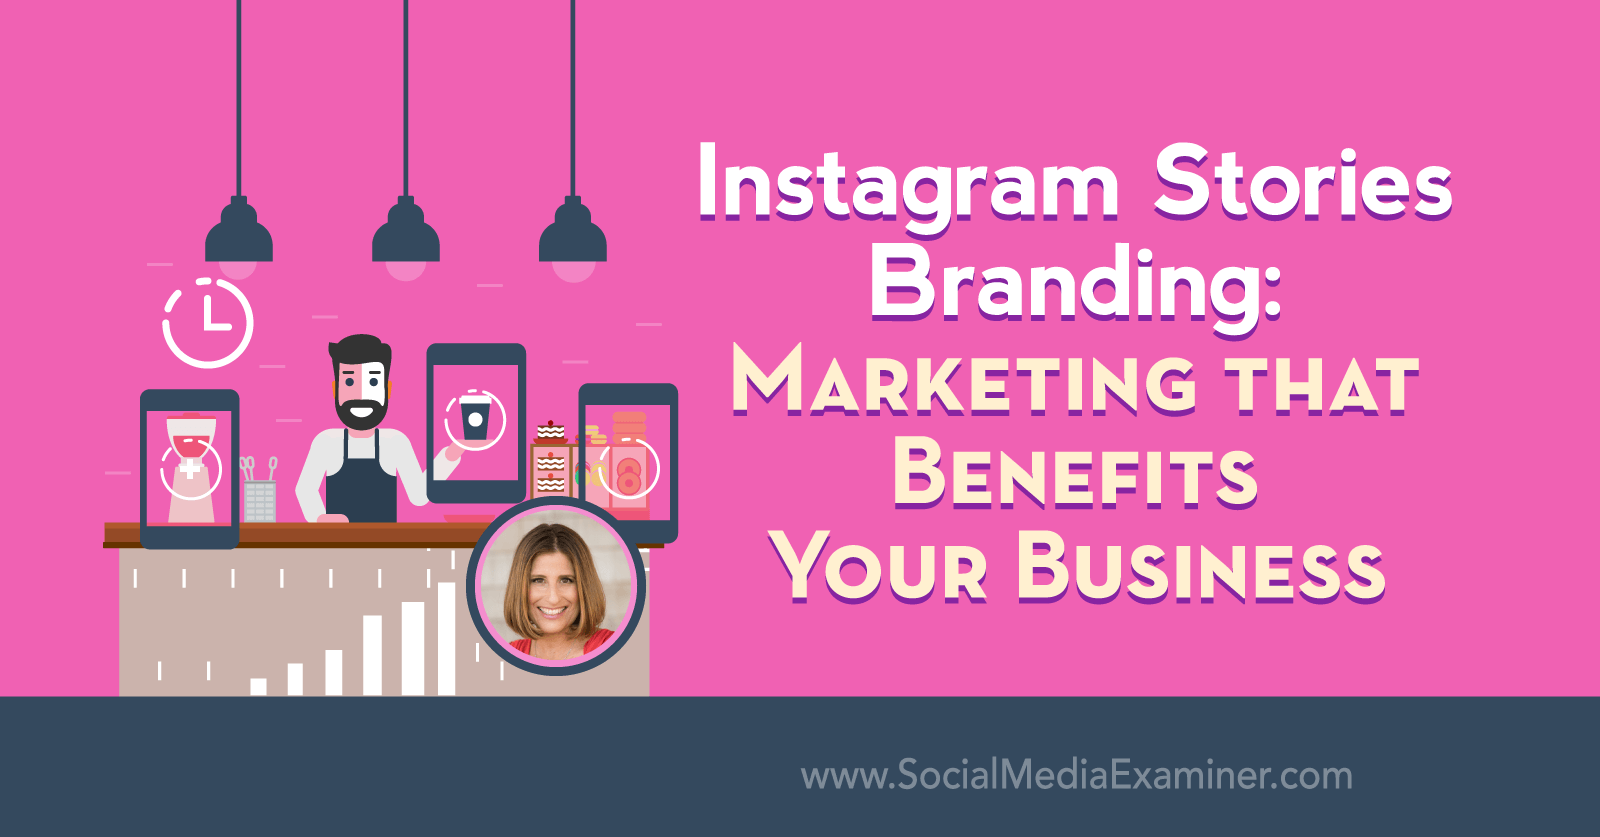 Instagram Stories Branding: Marketing That Benefits Your